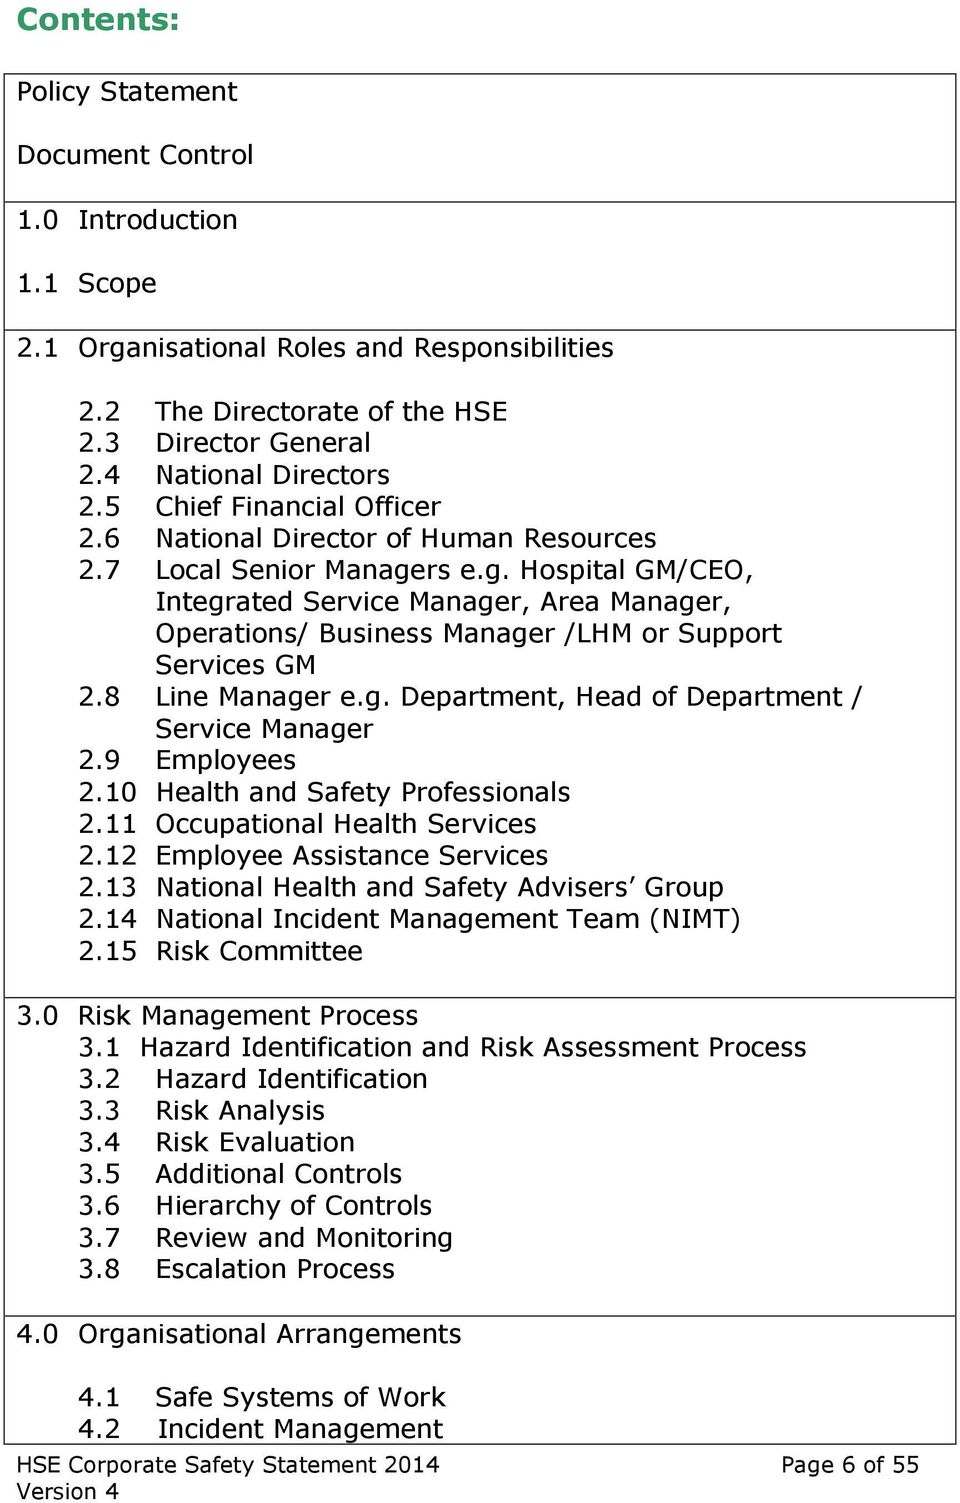 rs e.g. Hospital GM/CEO, Integrated Service Manager, Area Manager, Operations/ Business Manager /LHM or Support Services GM 2.8 Line Manager e.g. Department, Head of Department / Service Manager 2.